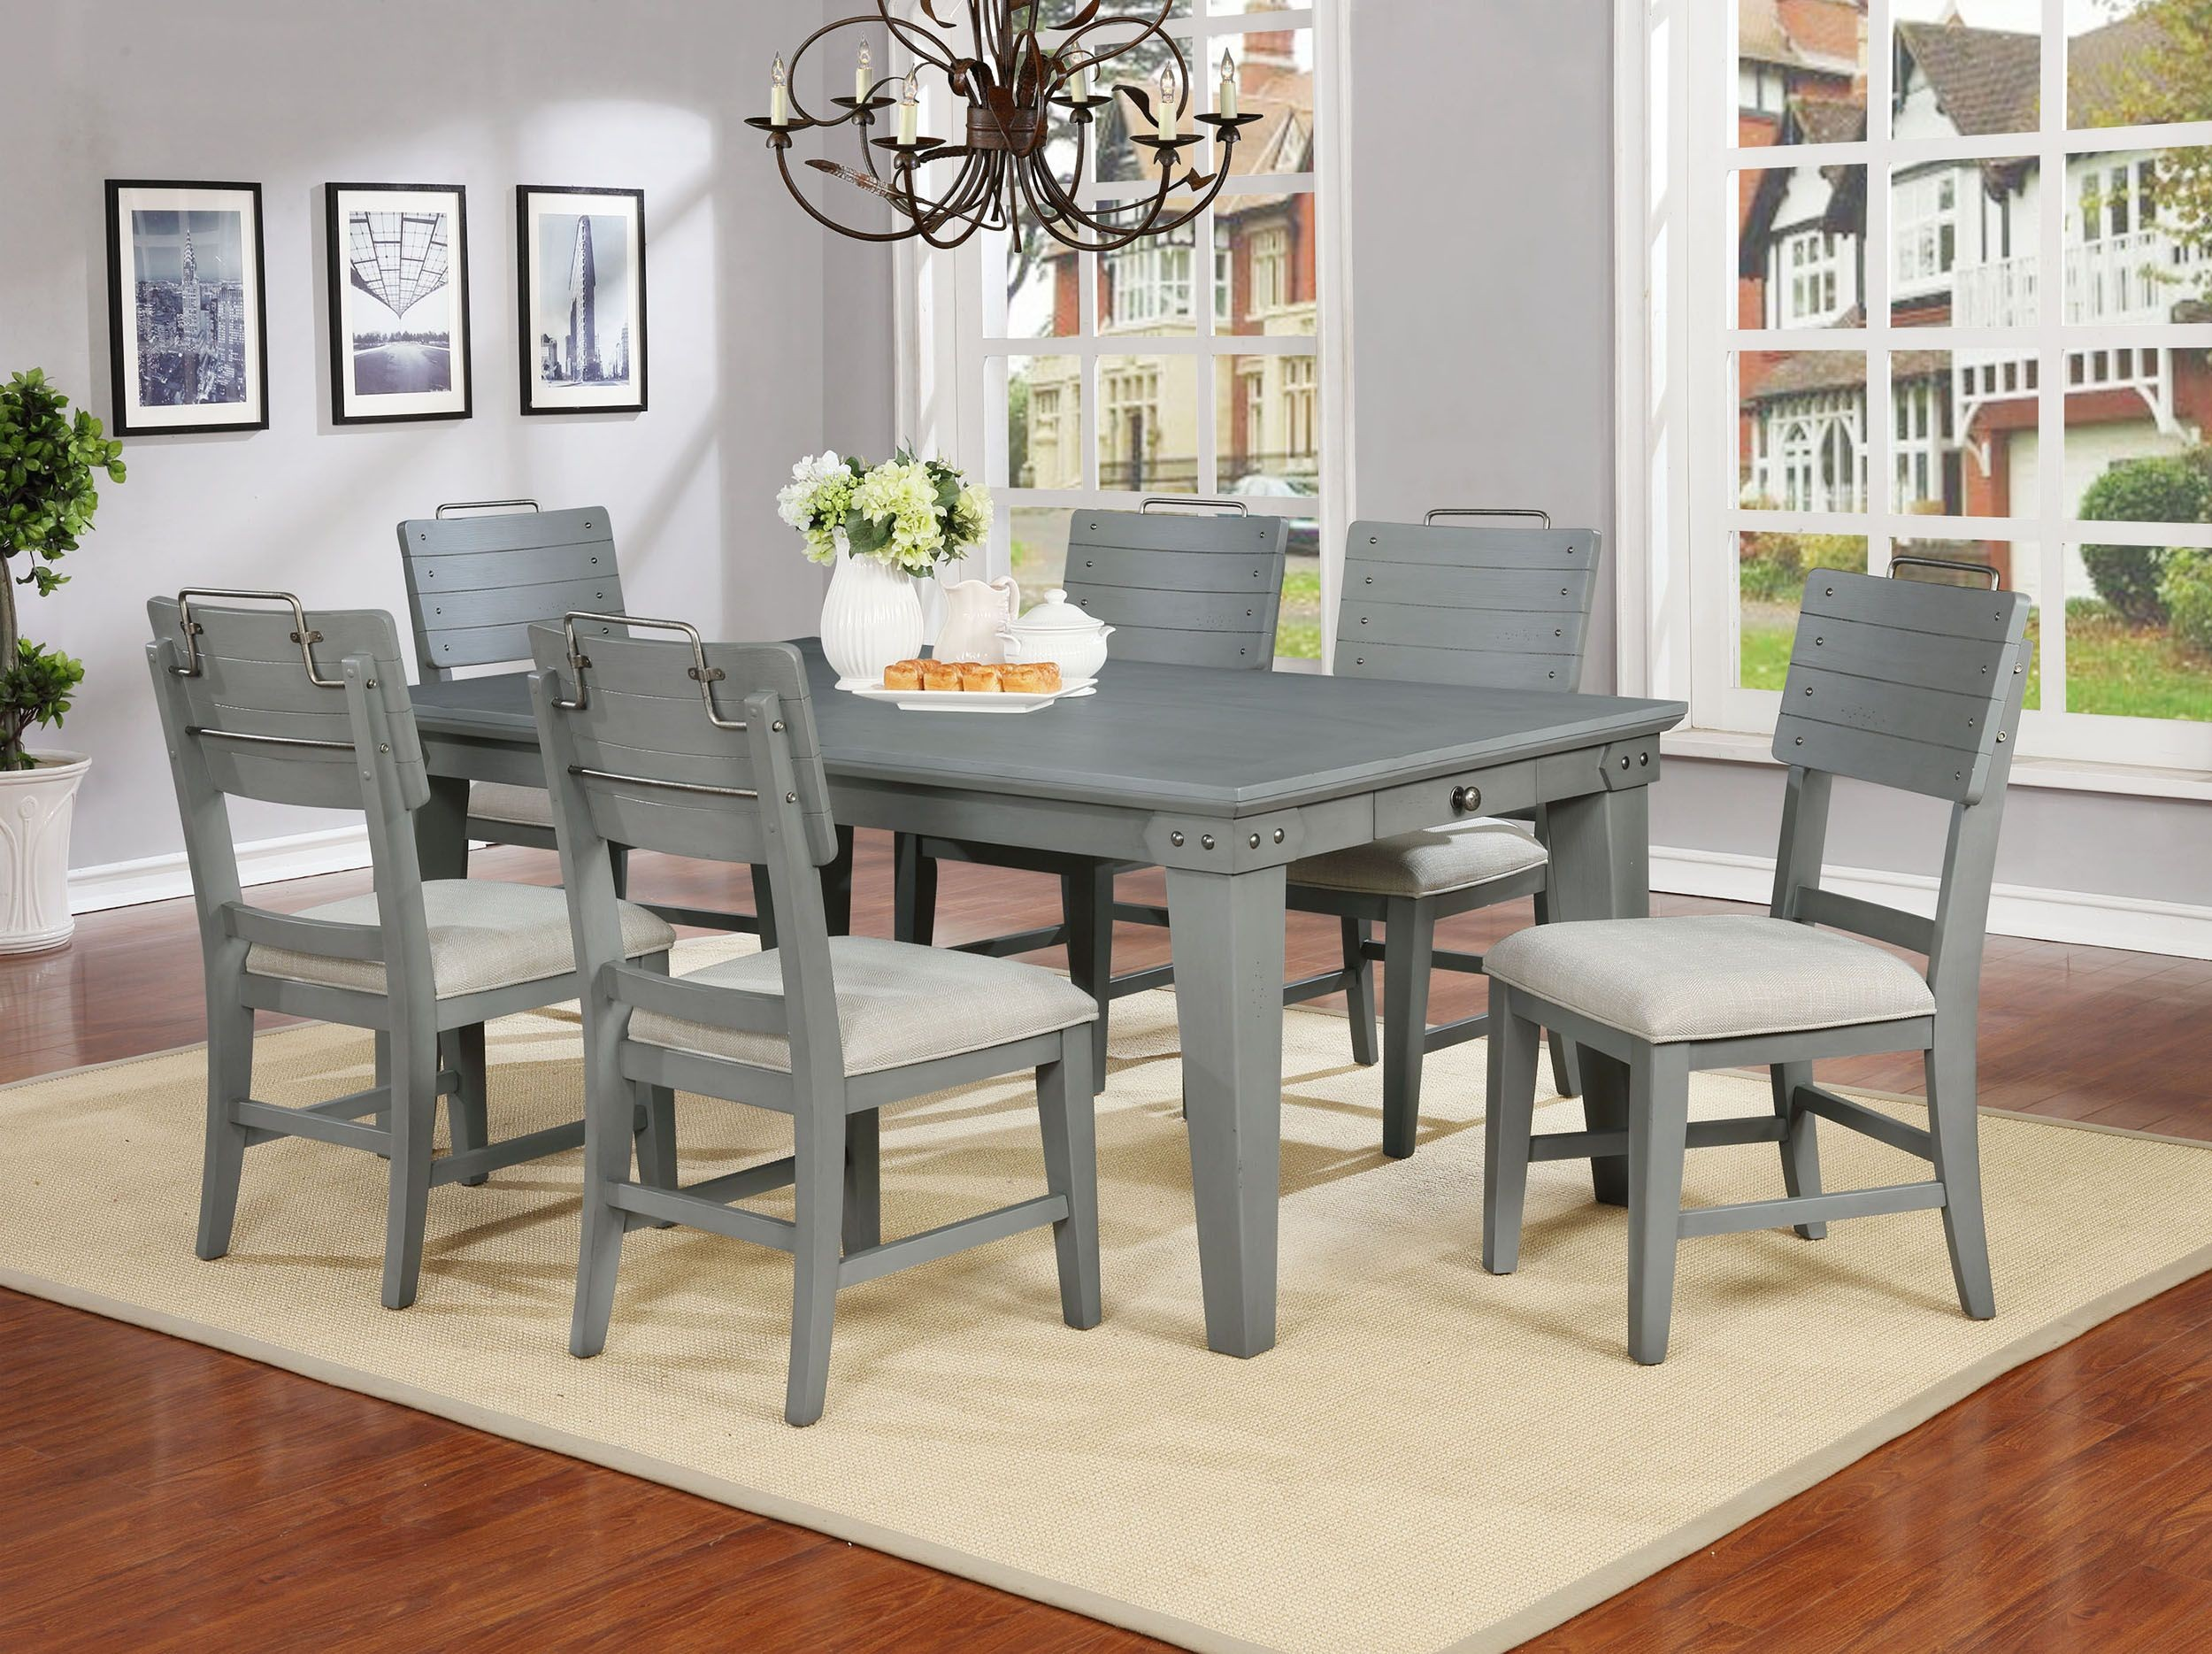 Bellville Dove Gray Counter Height Dining Room Set From